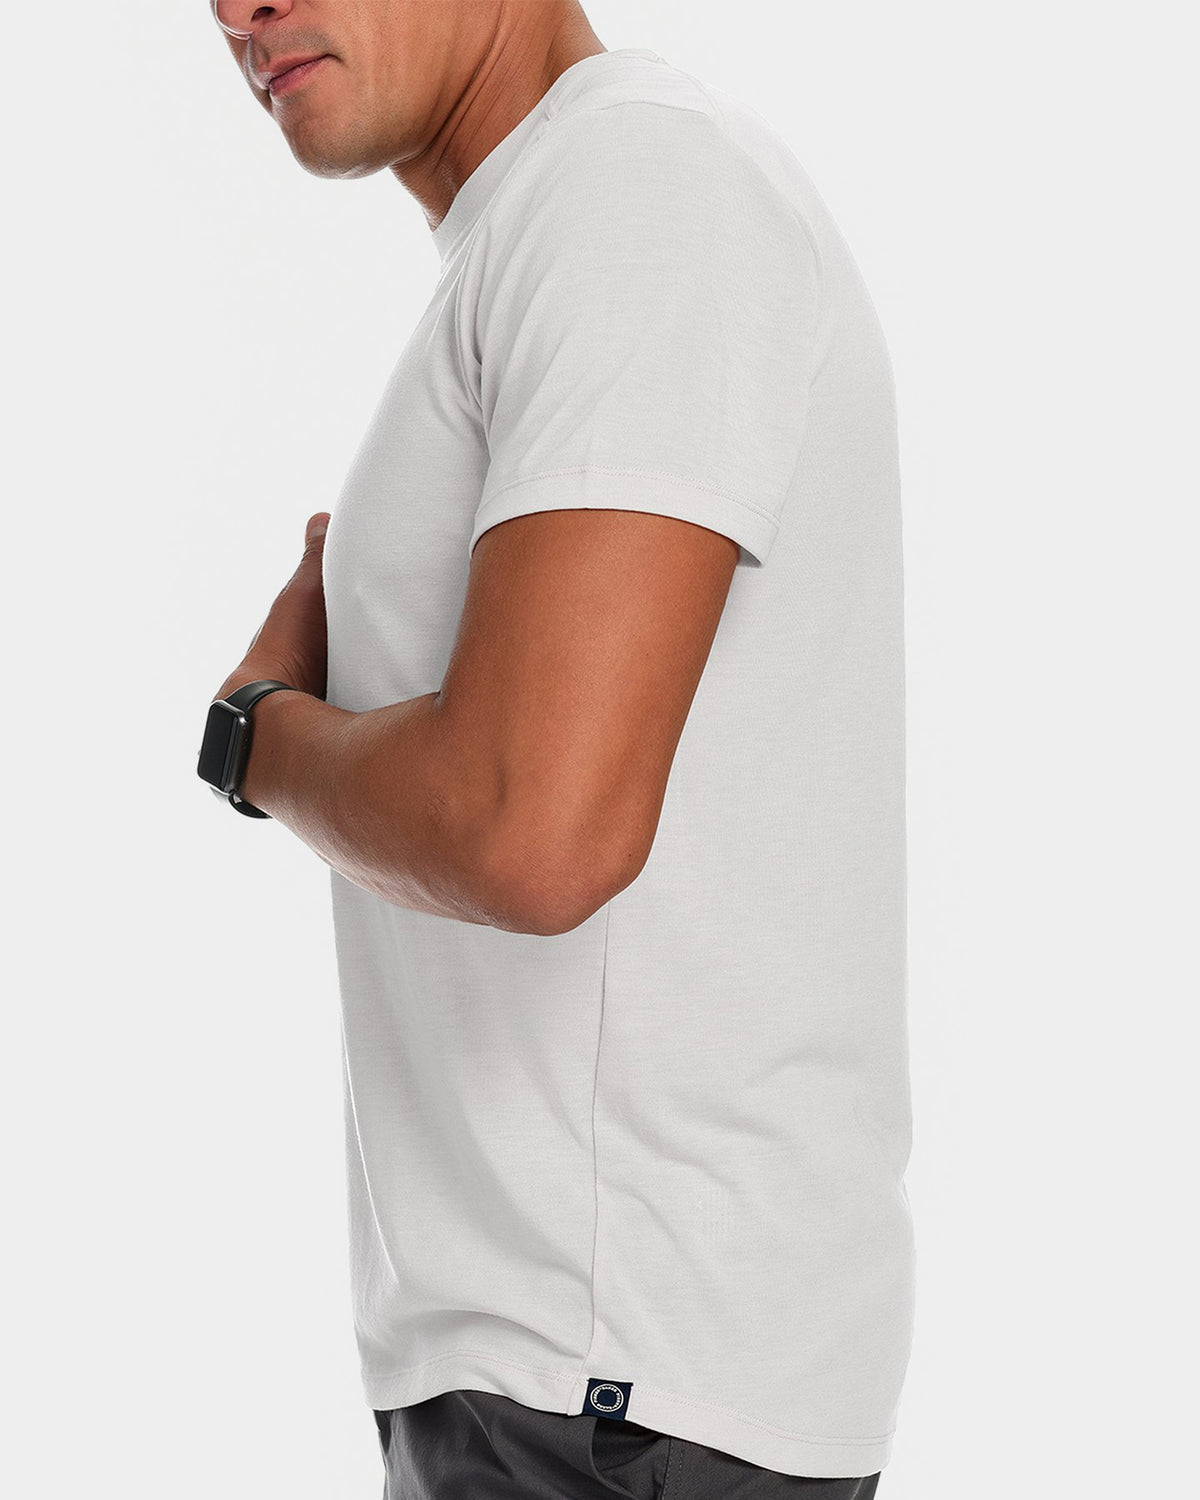 Men's Mission Short Sleeve Crew